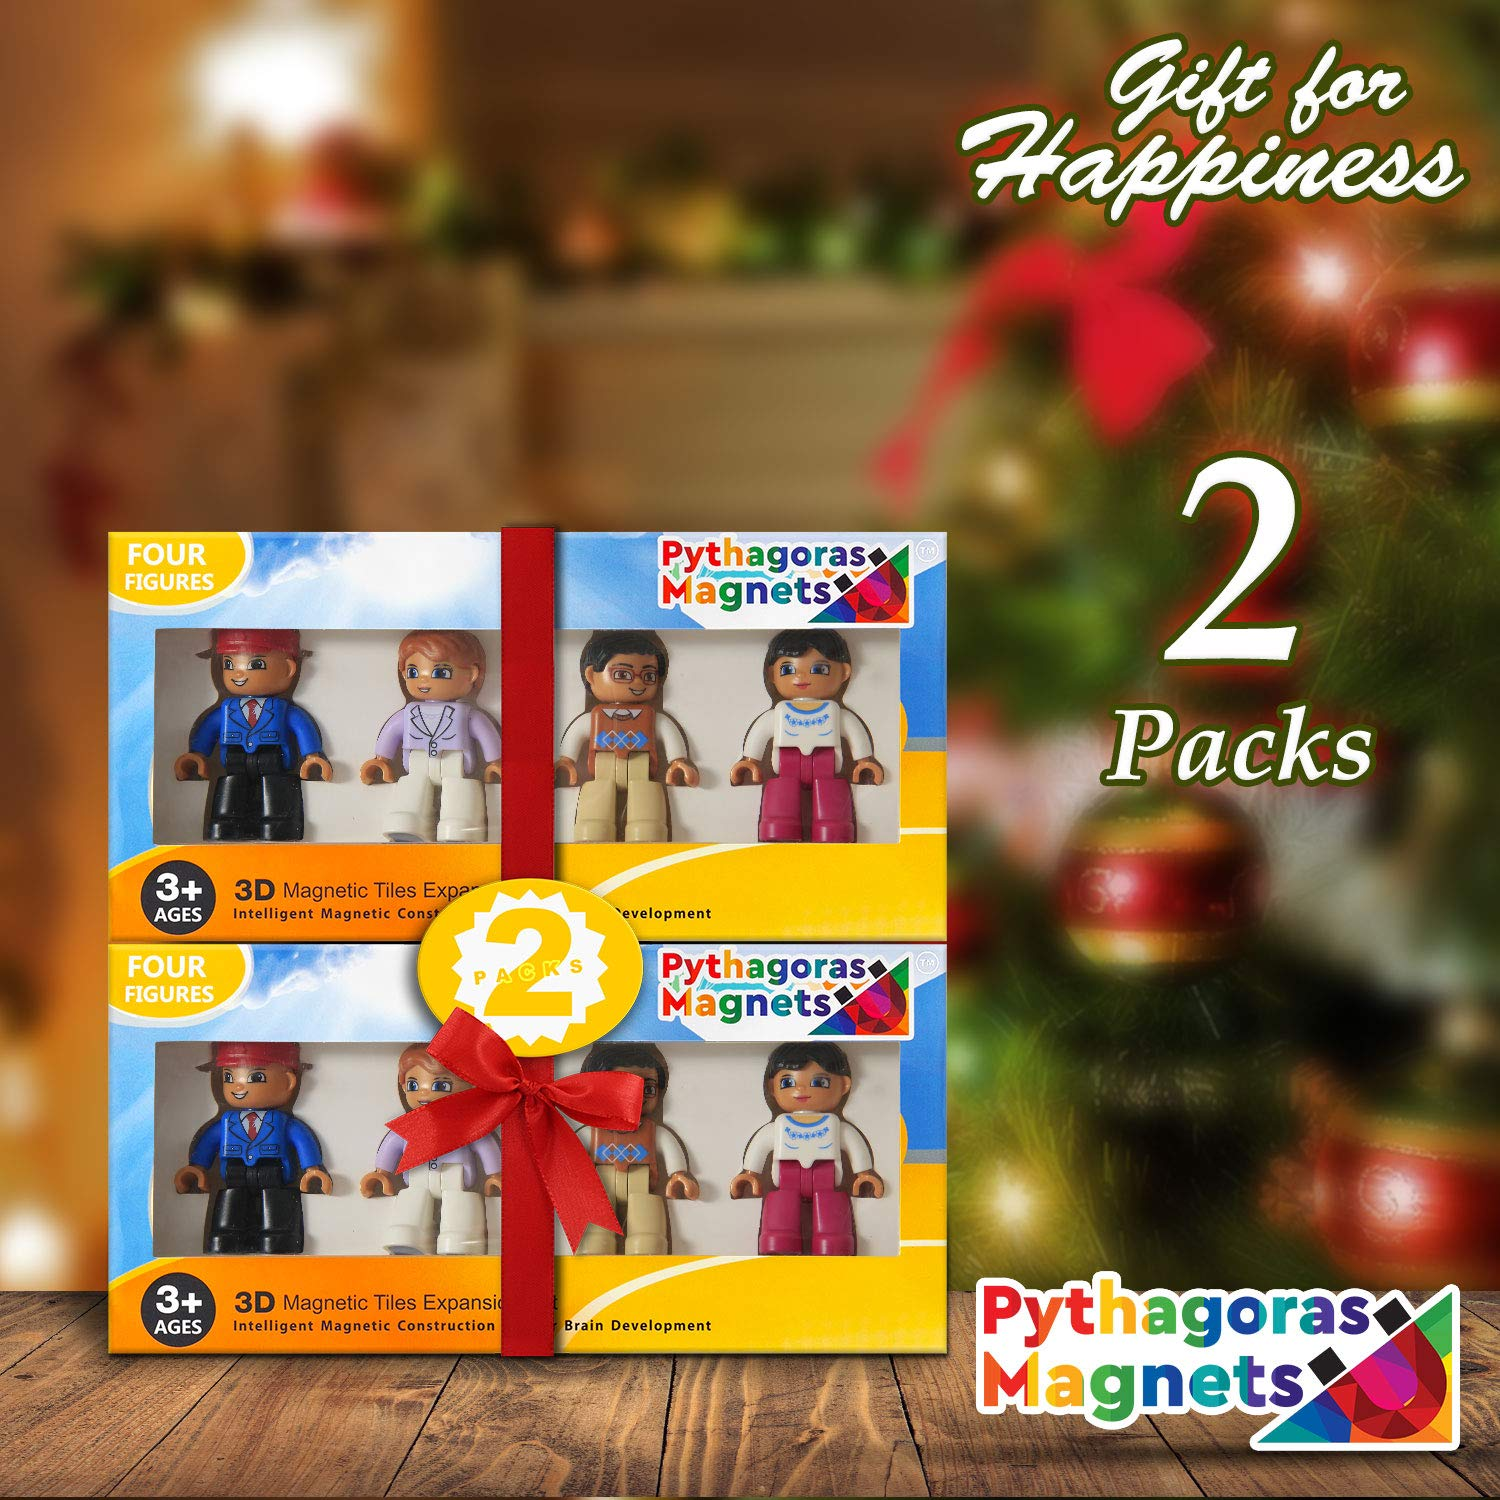 Magnetic Figures Set of 4 - Community Toy People Magnetic Tiles Expansion Pack for Boys and Girls - Pilot, Teacher, Lawyer, Coach Educational STEM Toys Add on Sets for Magnetic Blocks(2 Pack) by Pythagoras Magnets